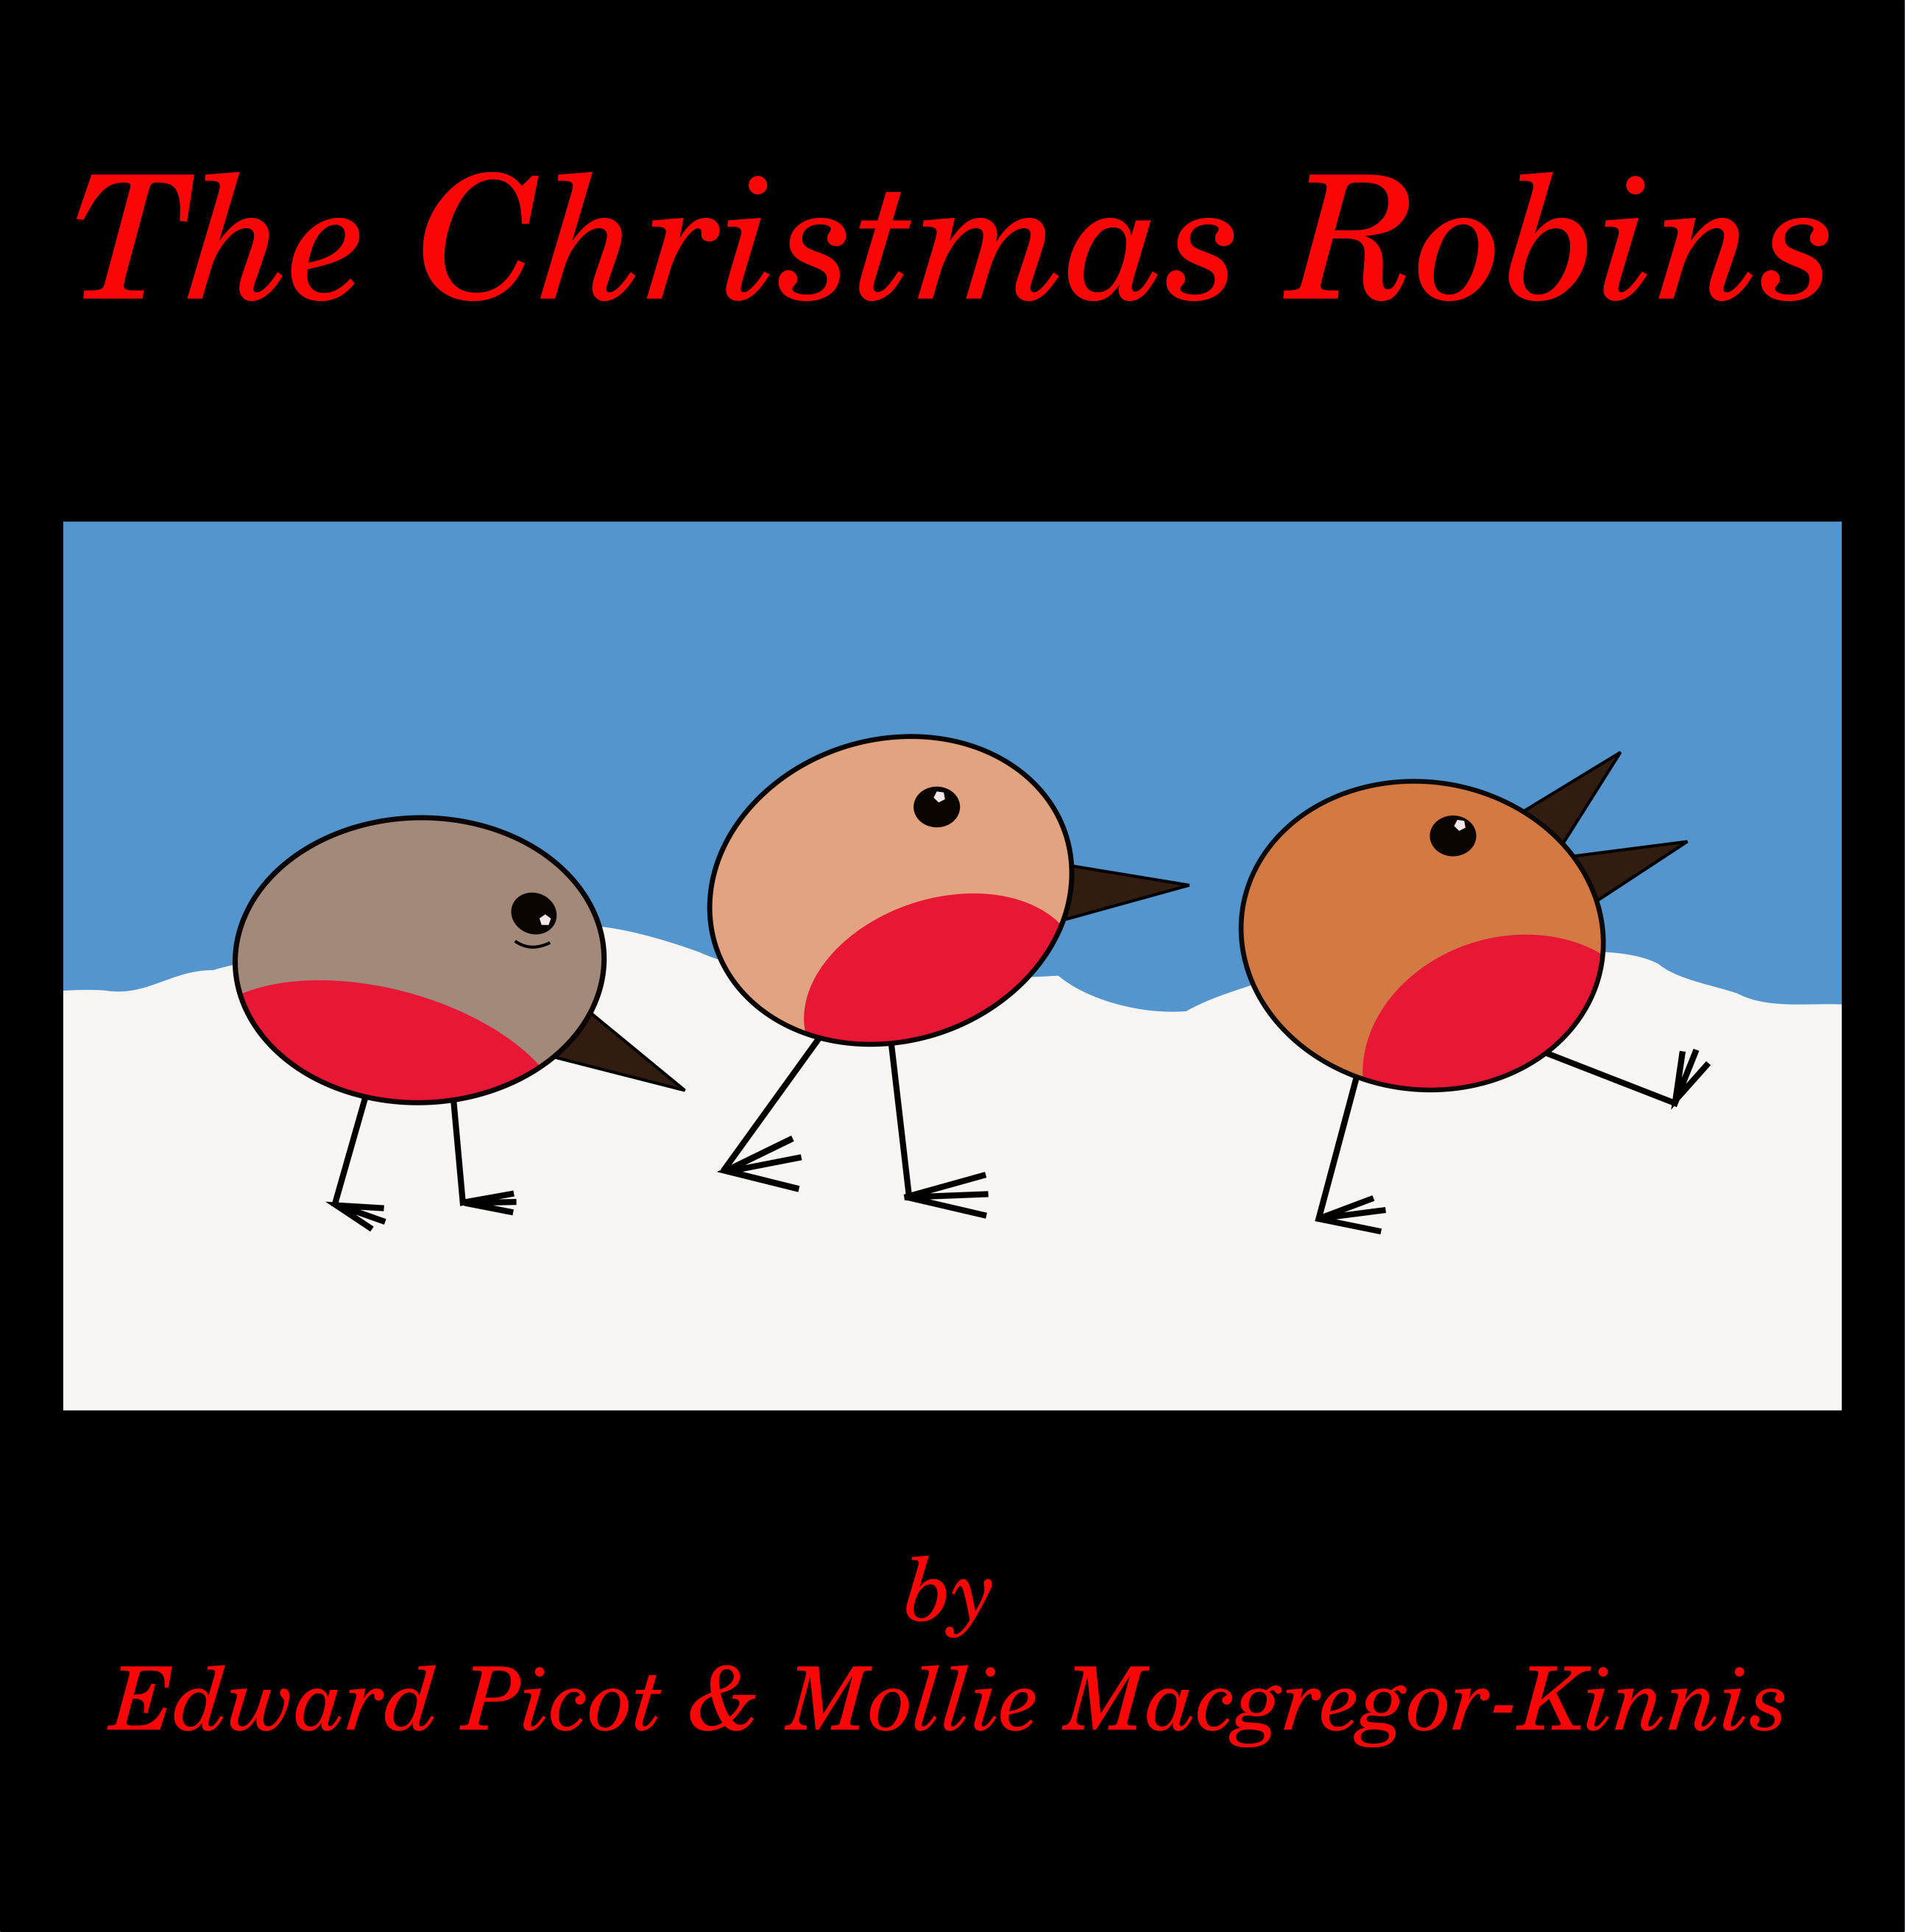 The Christmas Robins front cover image